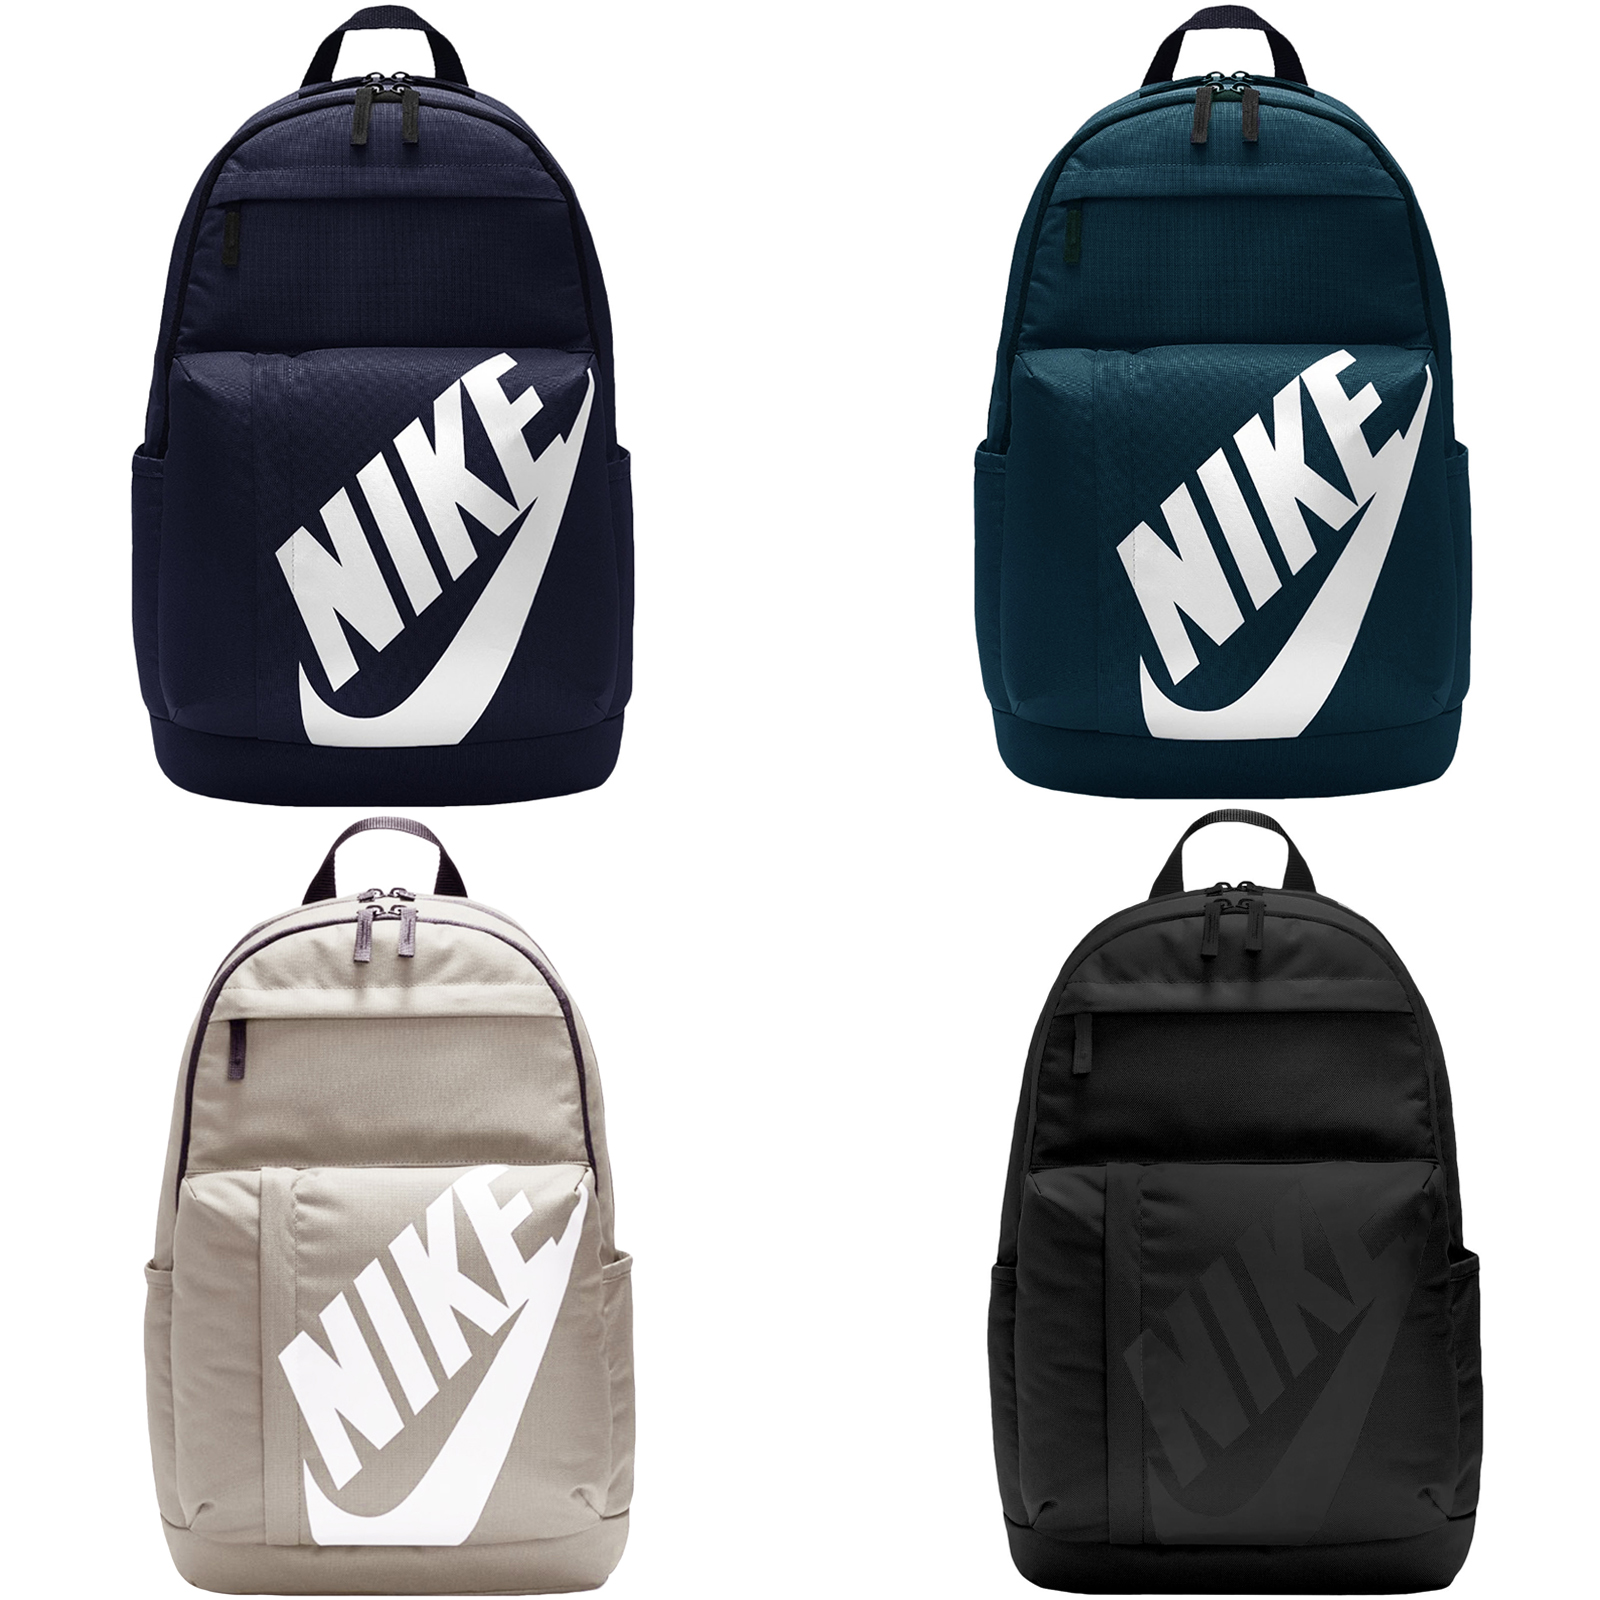 647f18656a74 Details about Nike Elemental Travel Gym School College Sports Backpack  Rucksack Bag